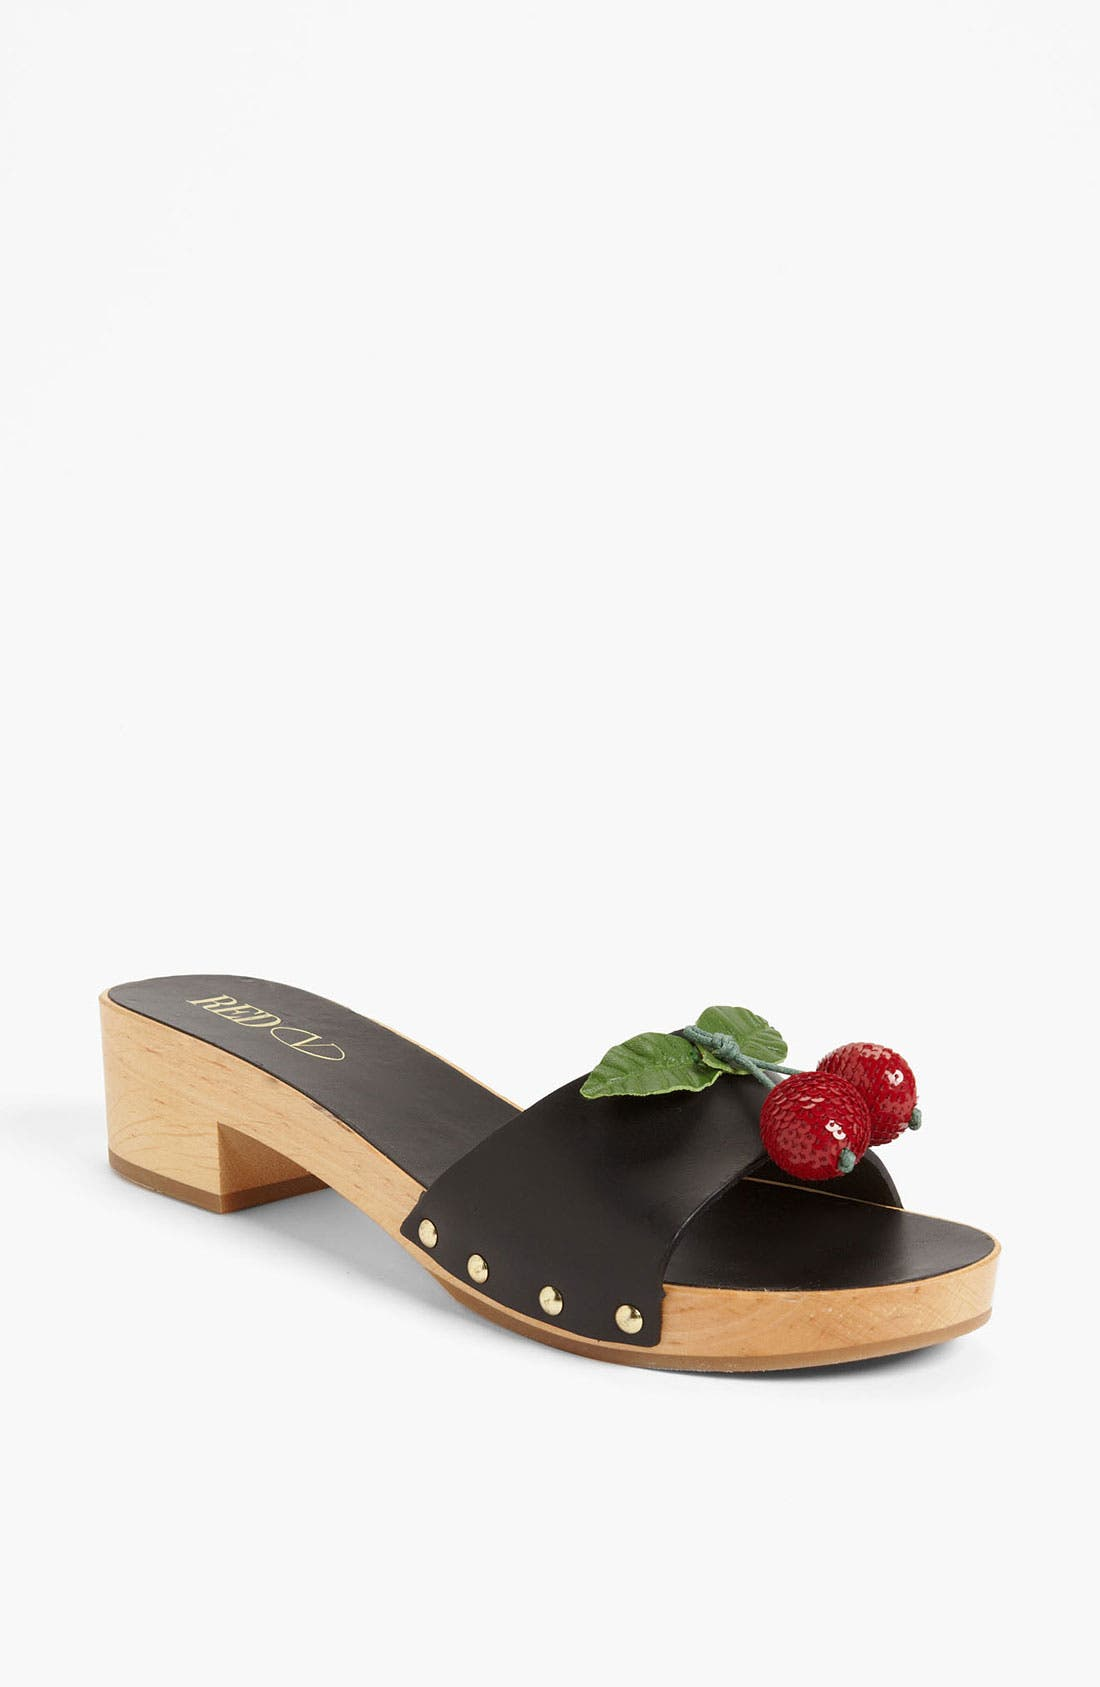 Alternate Image 1 Selected - RED Valentino 'Cherry' Sandal